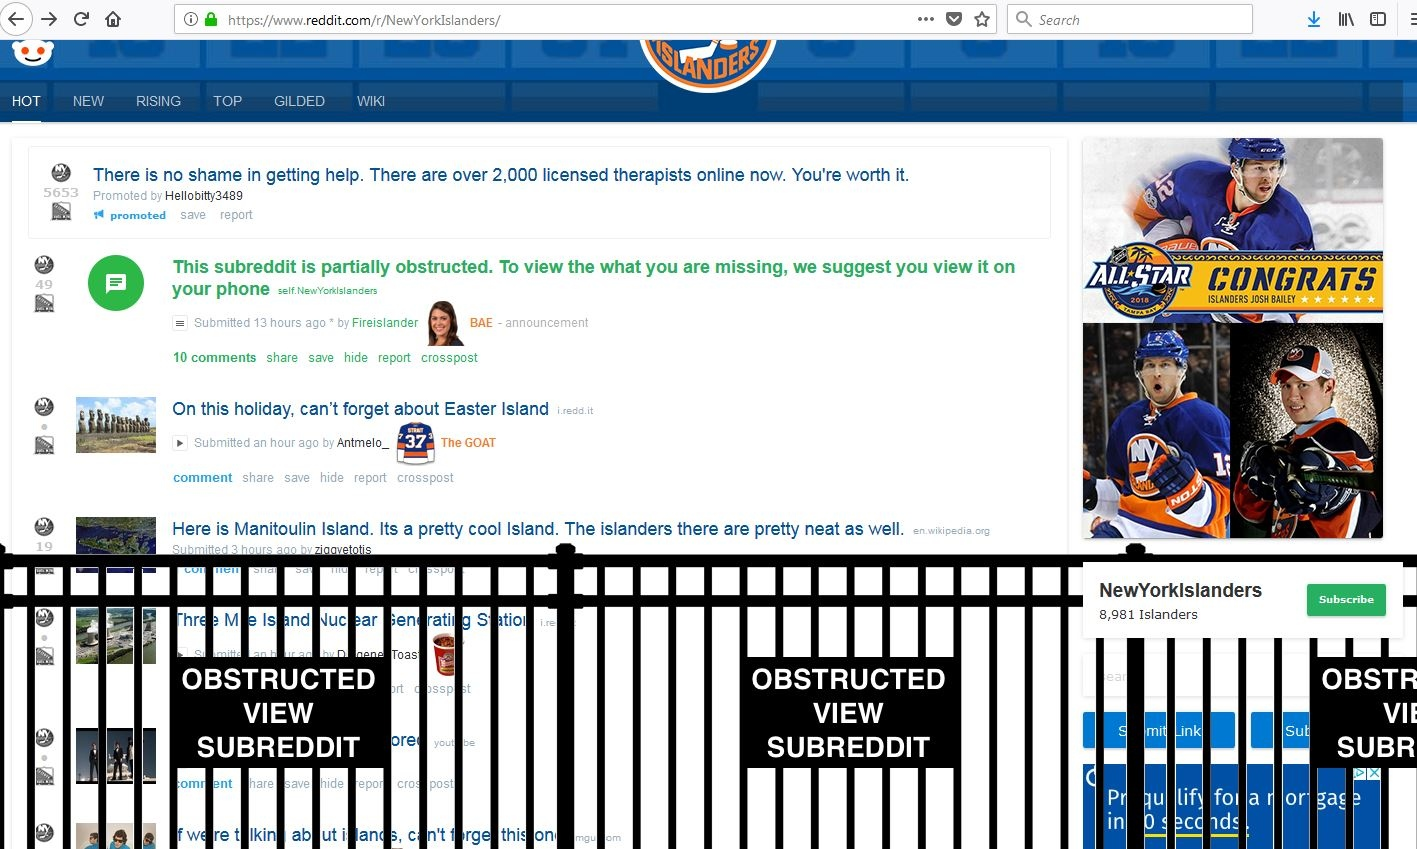 Someone gave the Islanders' Reddit page a partially